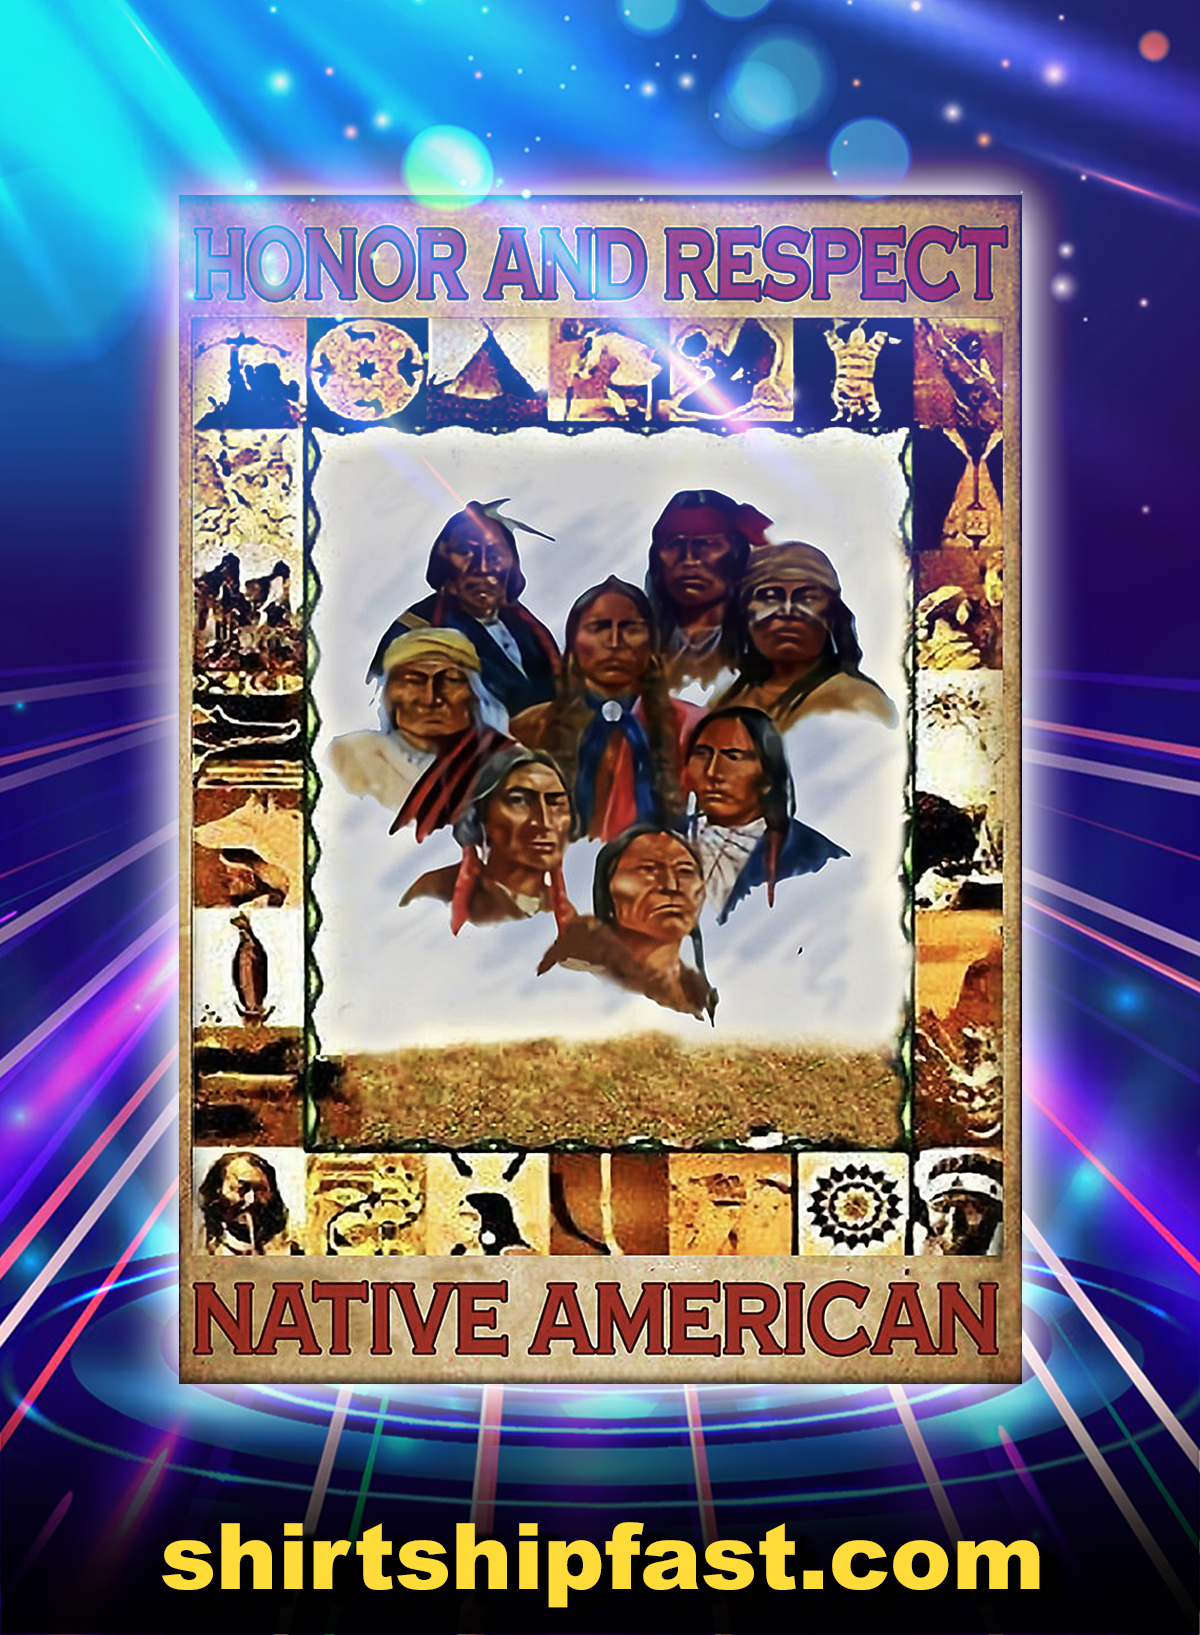 Honor and respect native american poster - A4